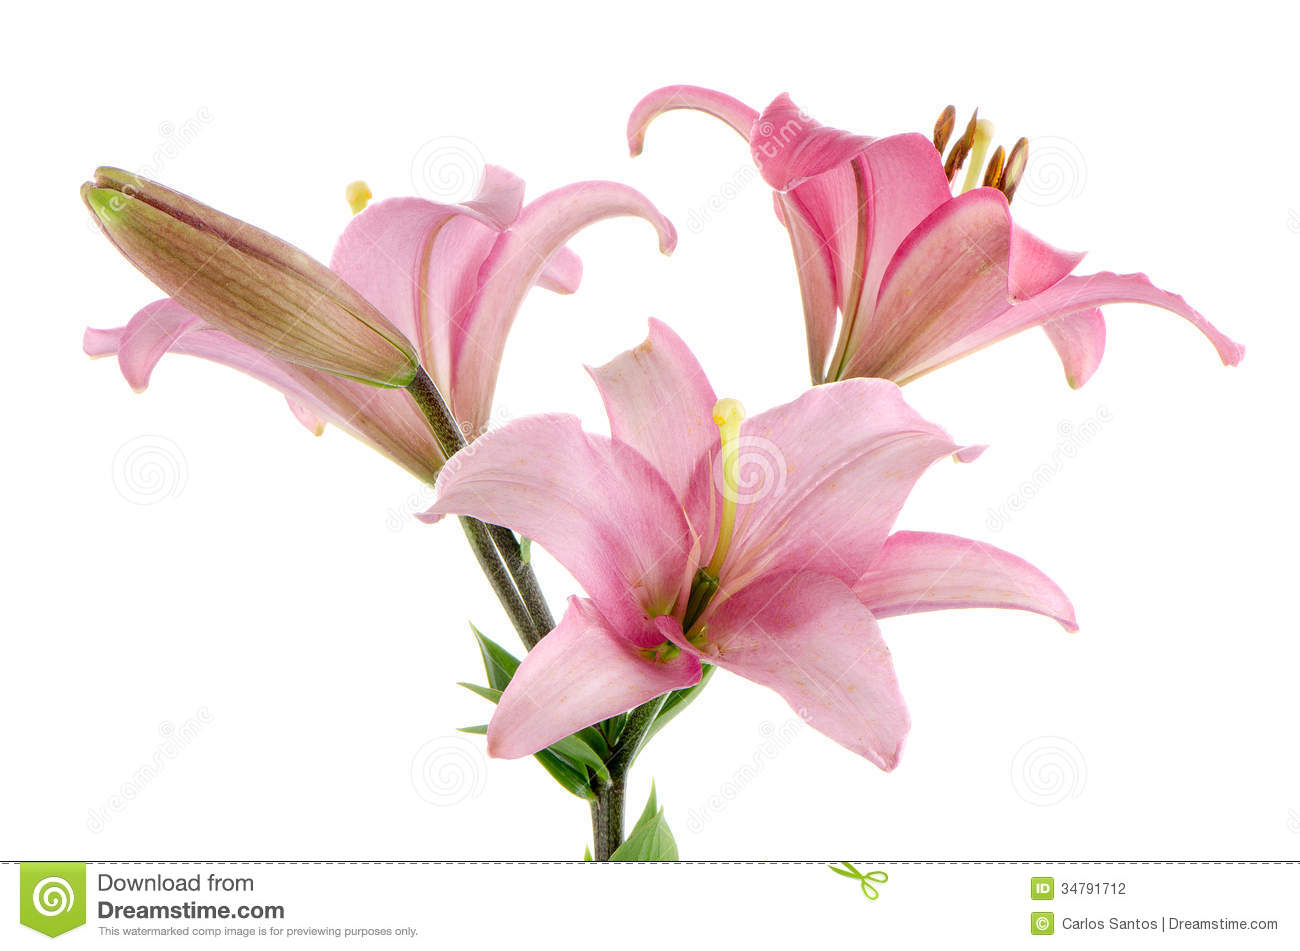 Beautiful pink flowers in the garden stock photography image - Pink Lilies Stock Photography Image 34791712